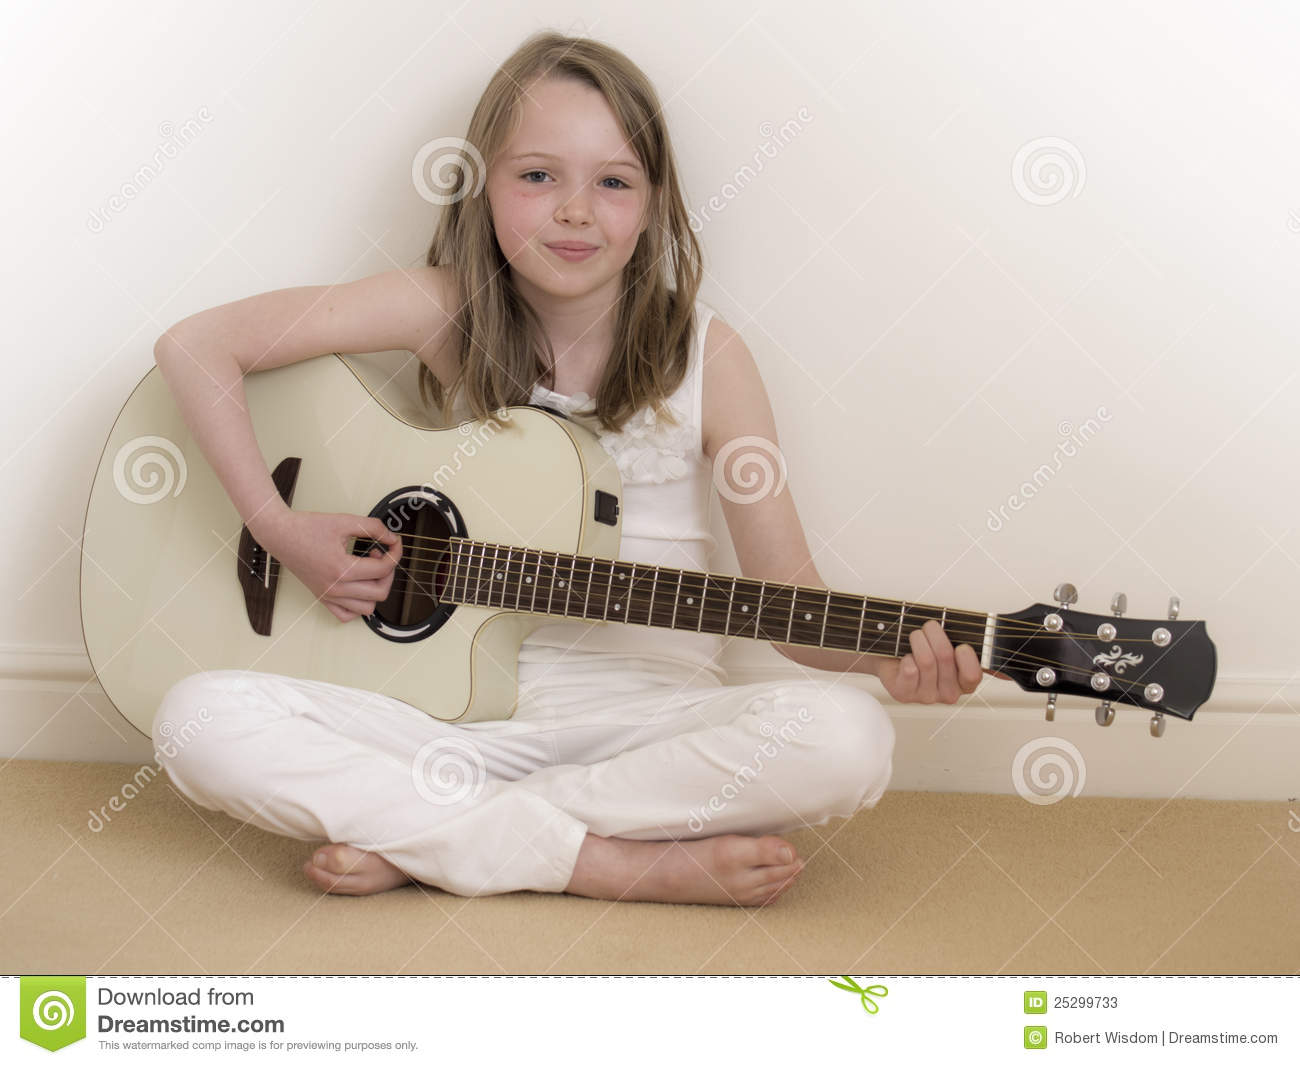 Girl Acoustic Guitars : young girl on a acoustic guitar 2 stock photos image 25299733 ~ Vivirlamusica.com Haus und Dekorationen